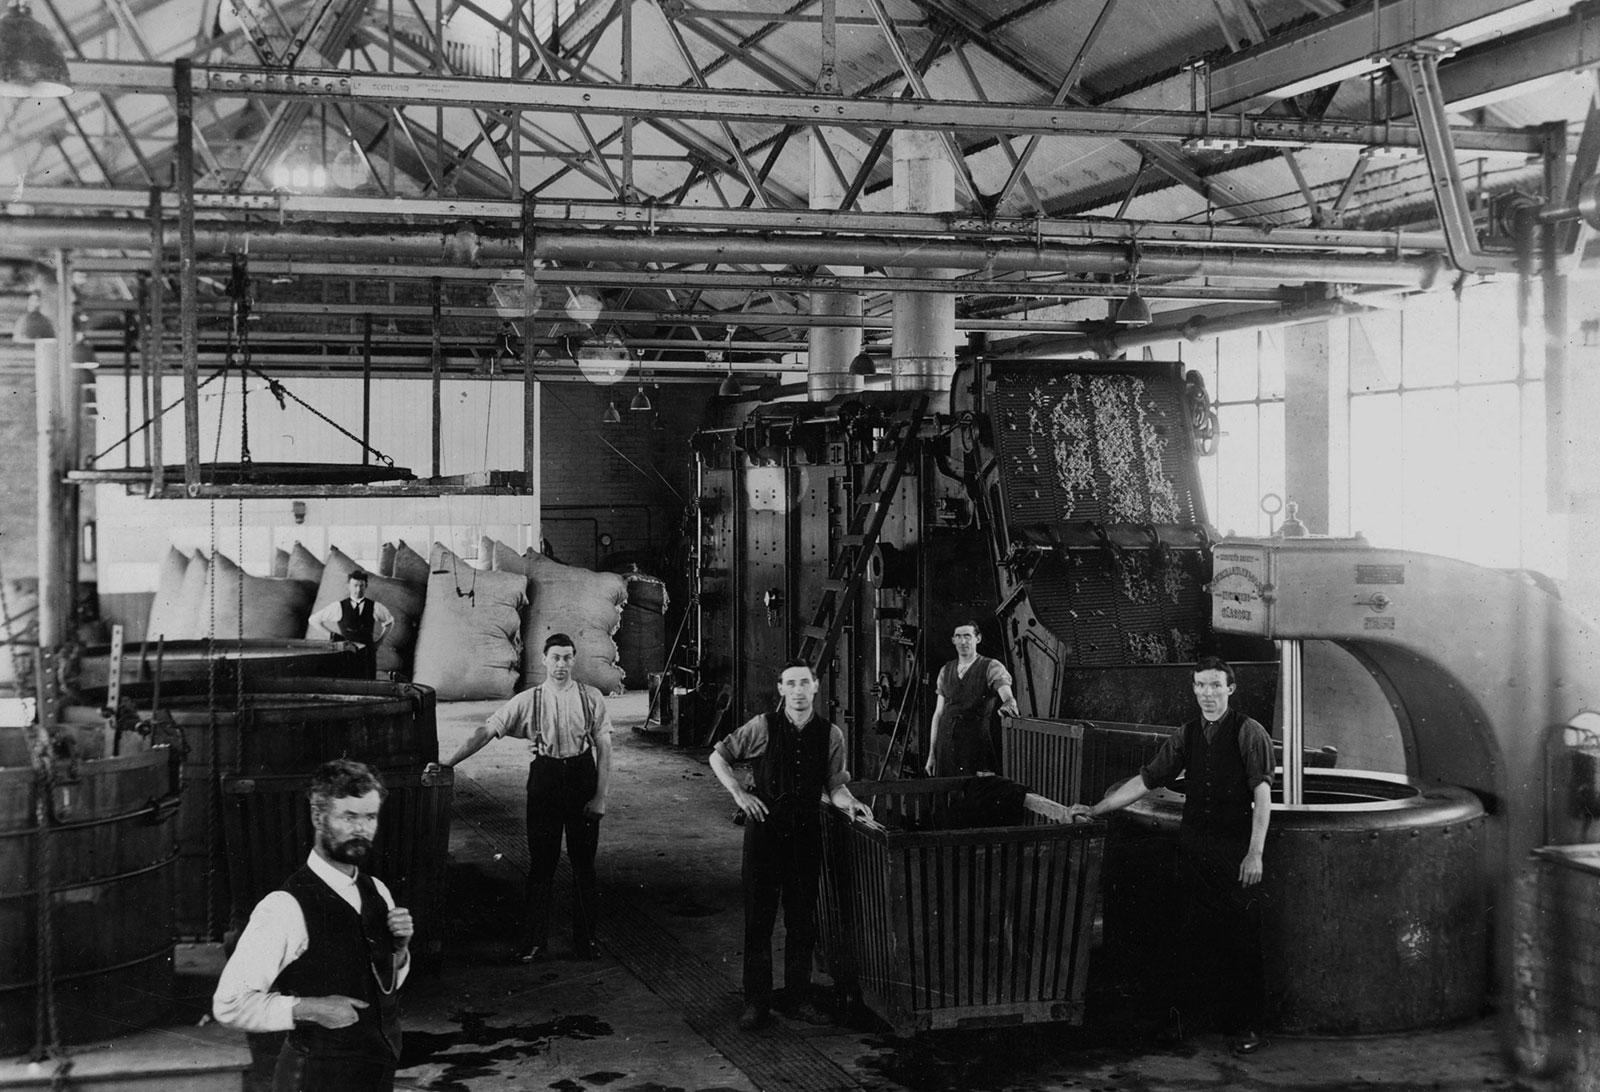 - THE MILLS WERE THE FIRST MAJOR MANUFACTURING OPERATION IN GEELONG.